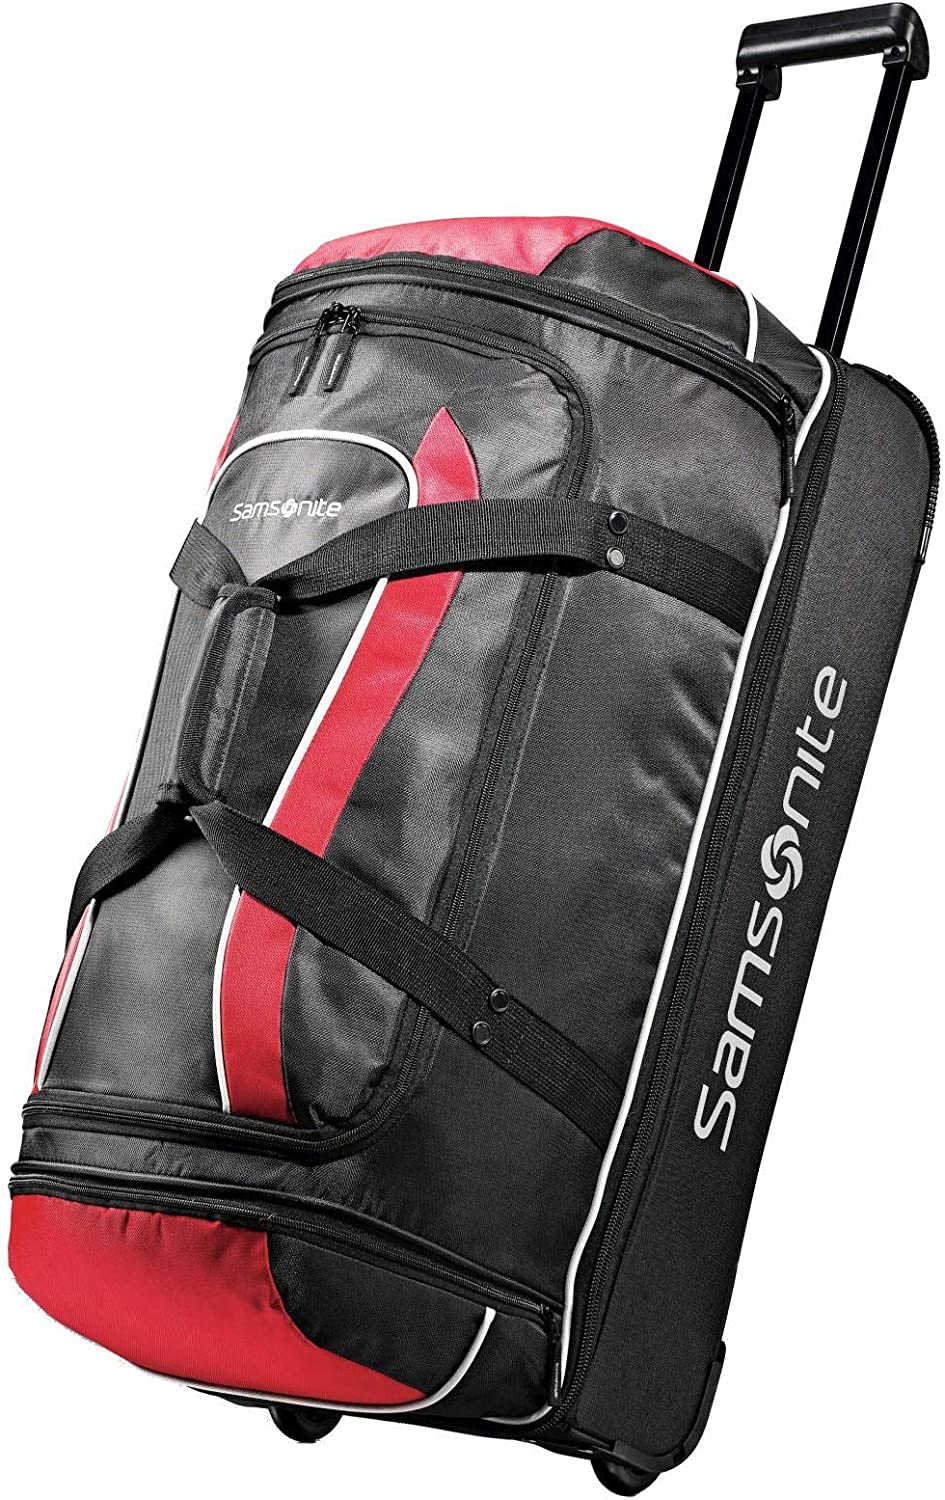 Samsonite Andante Drop Bottom 28 Wheeled Duffel Bag in Black-Red